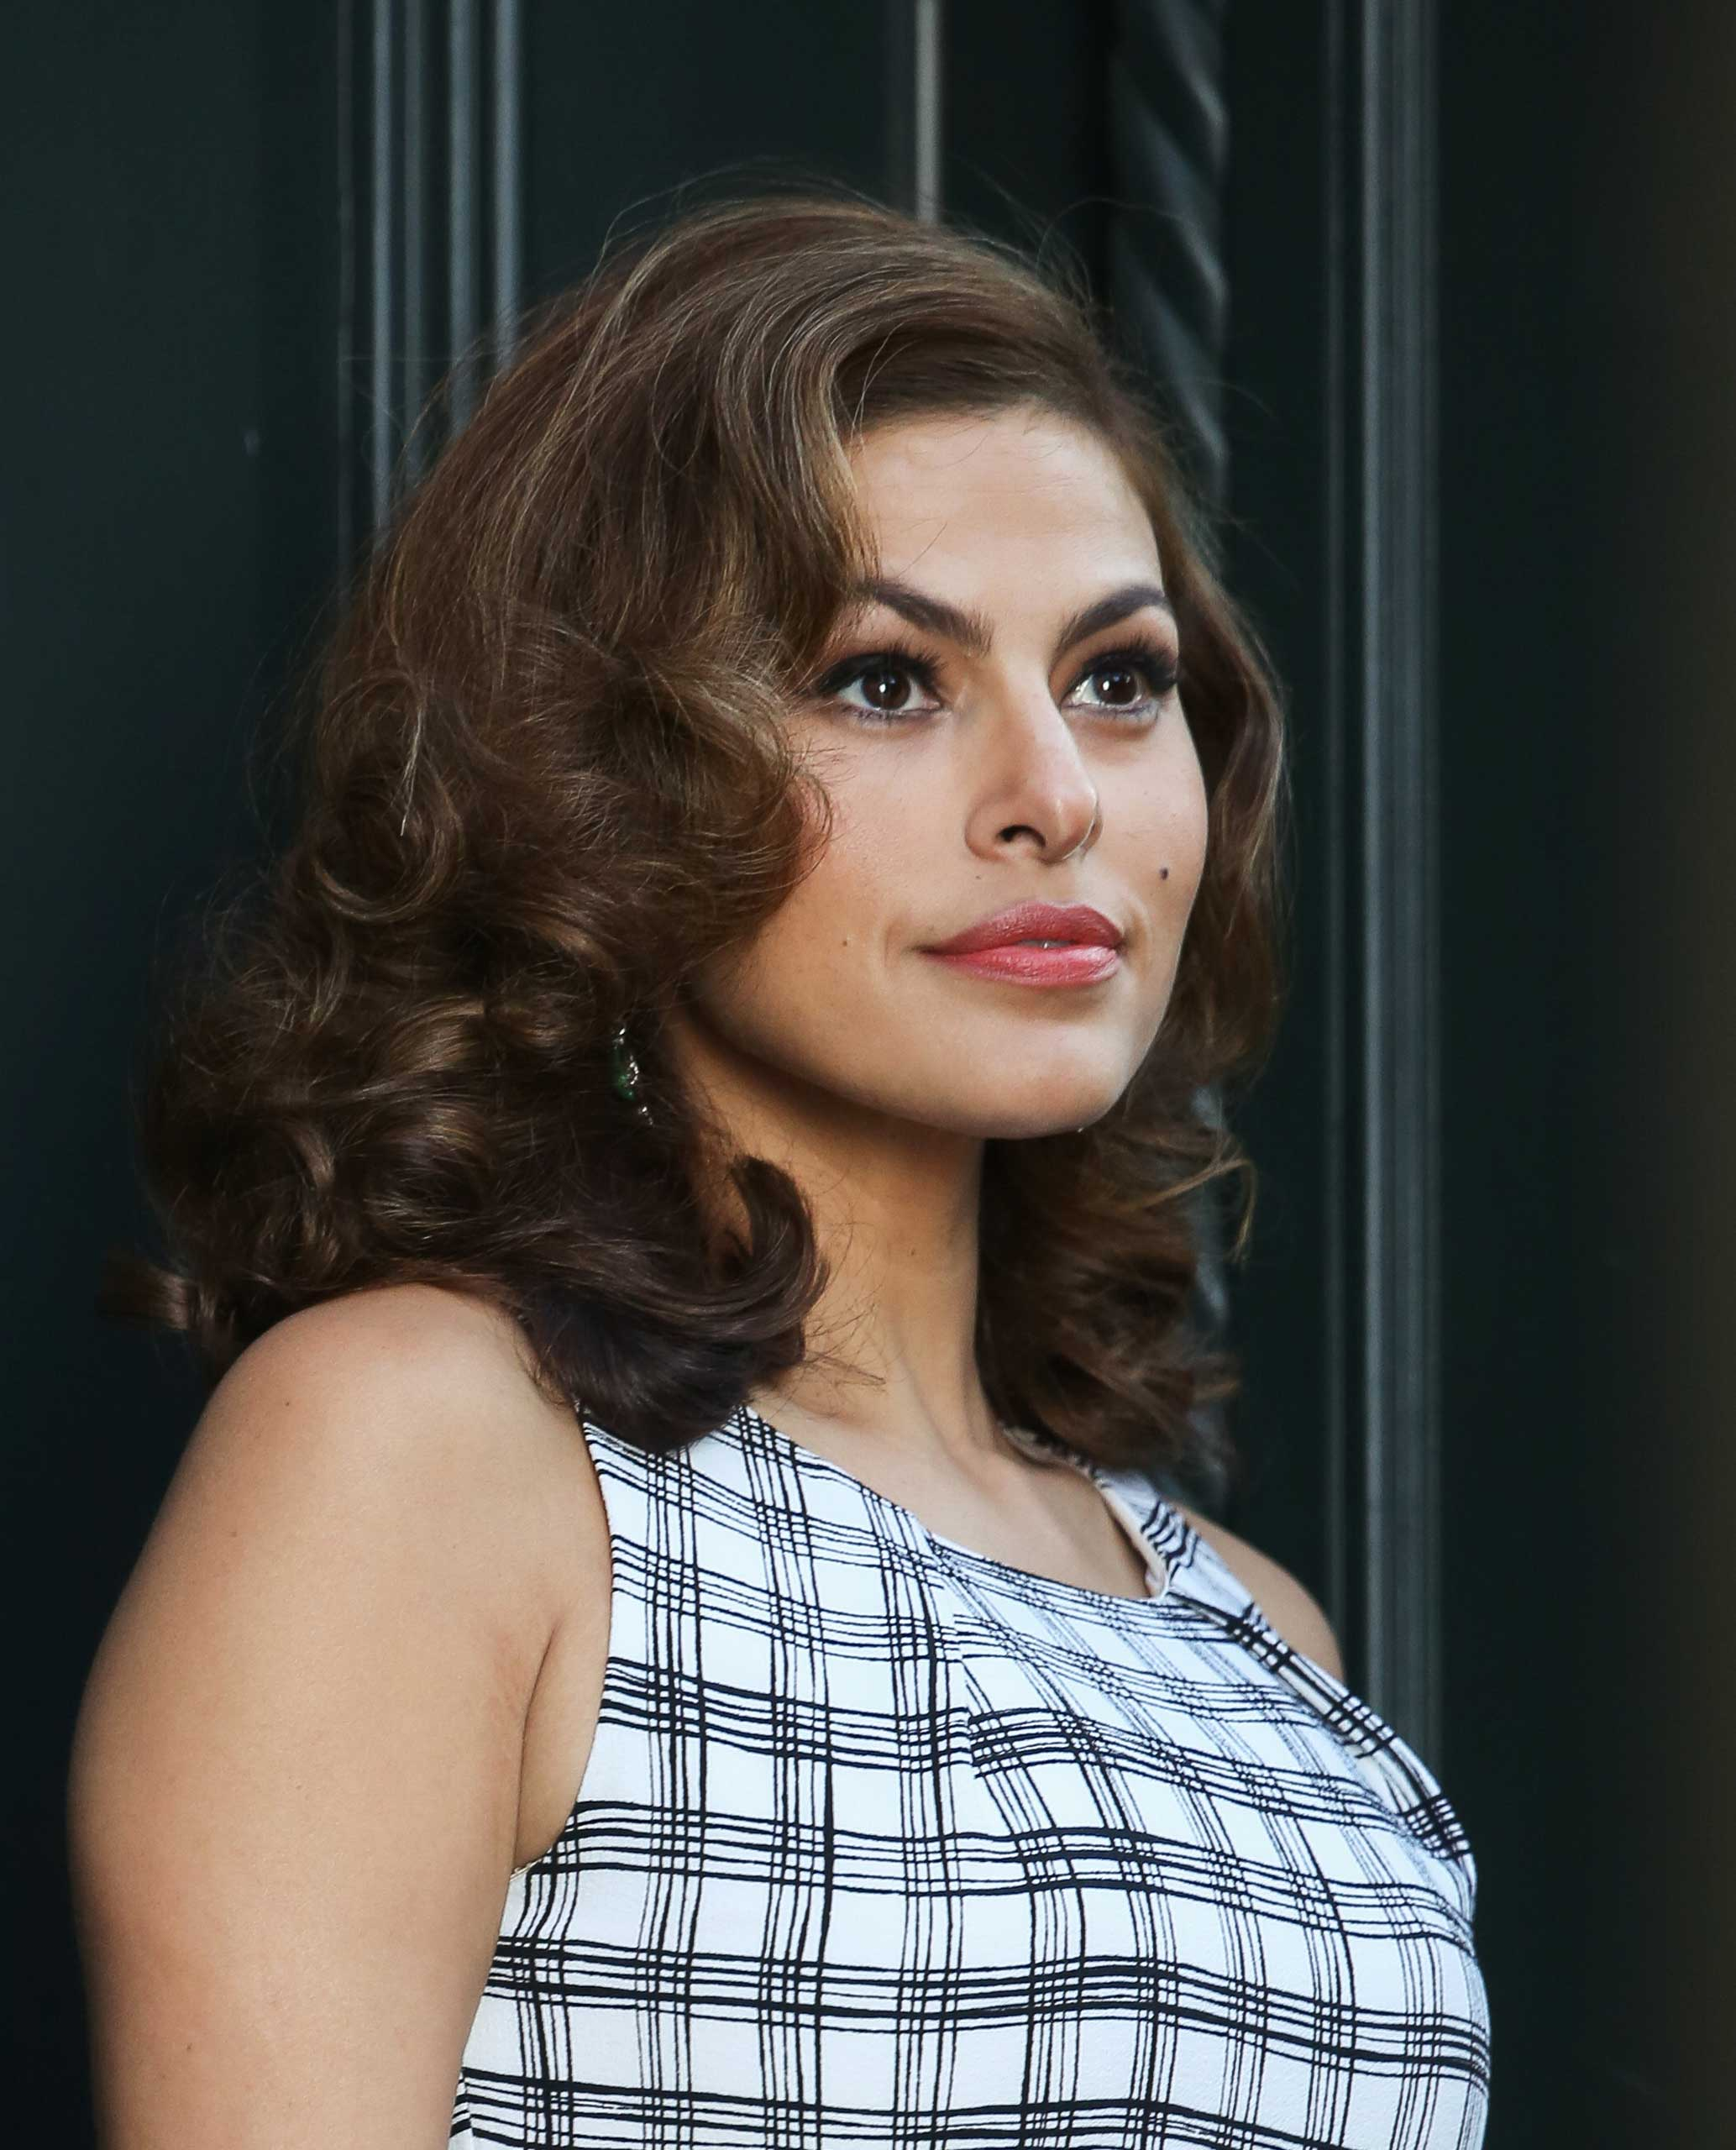 Eva Mendes seen filming a commercial on Feb. 18, 2015 in New York City.